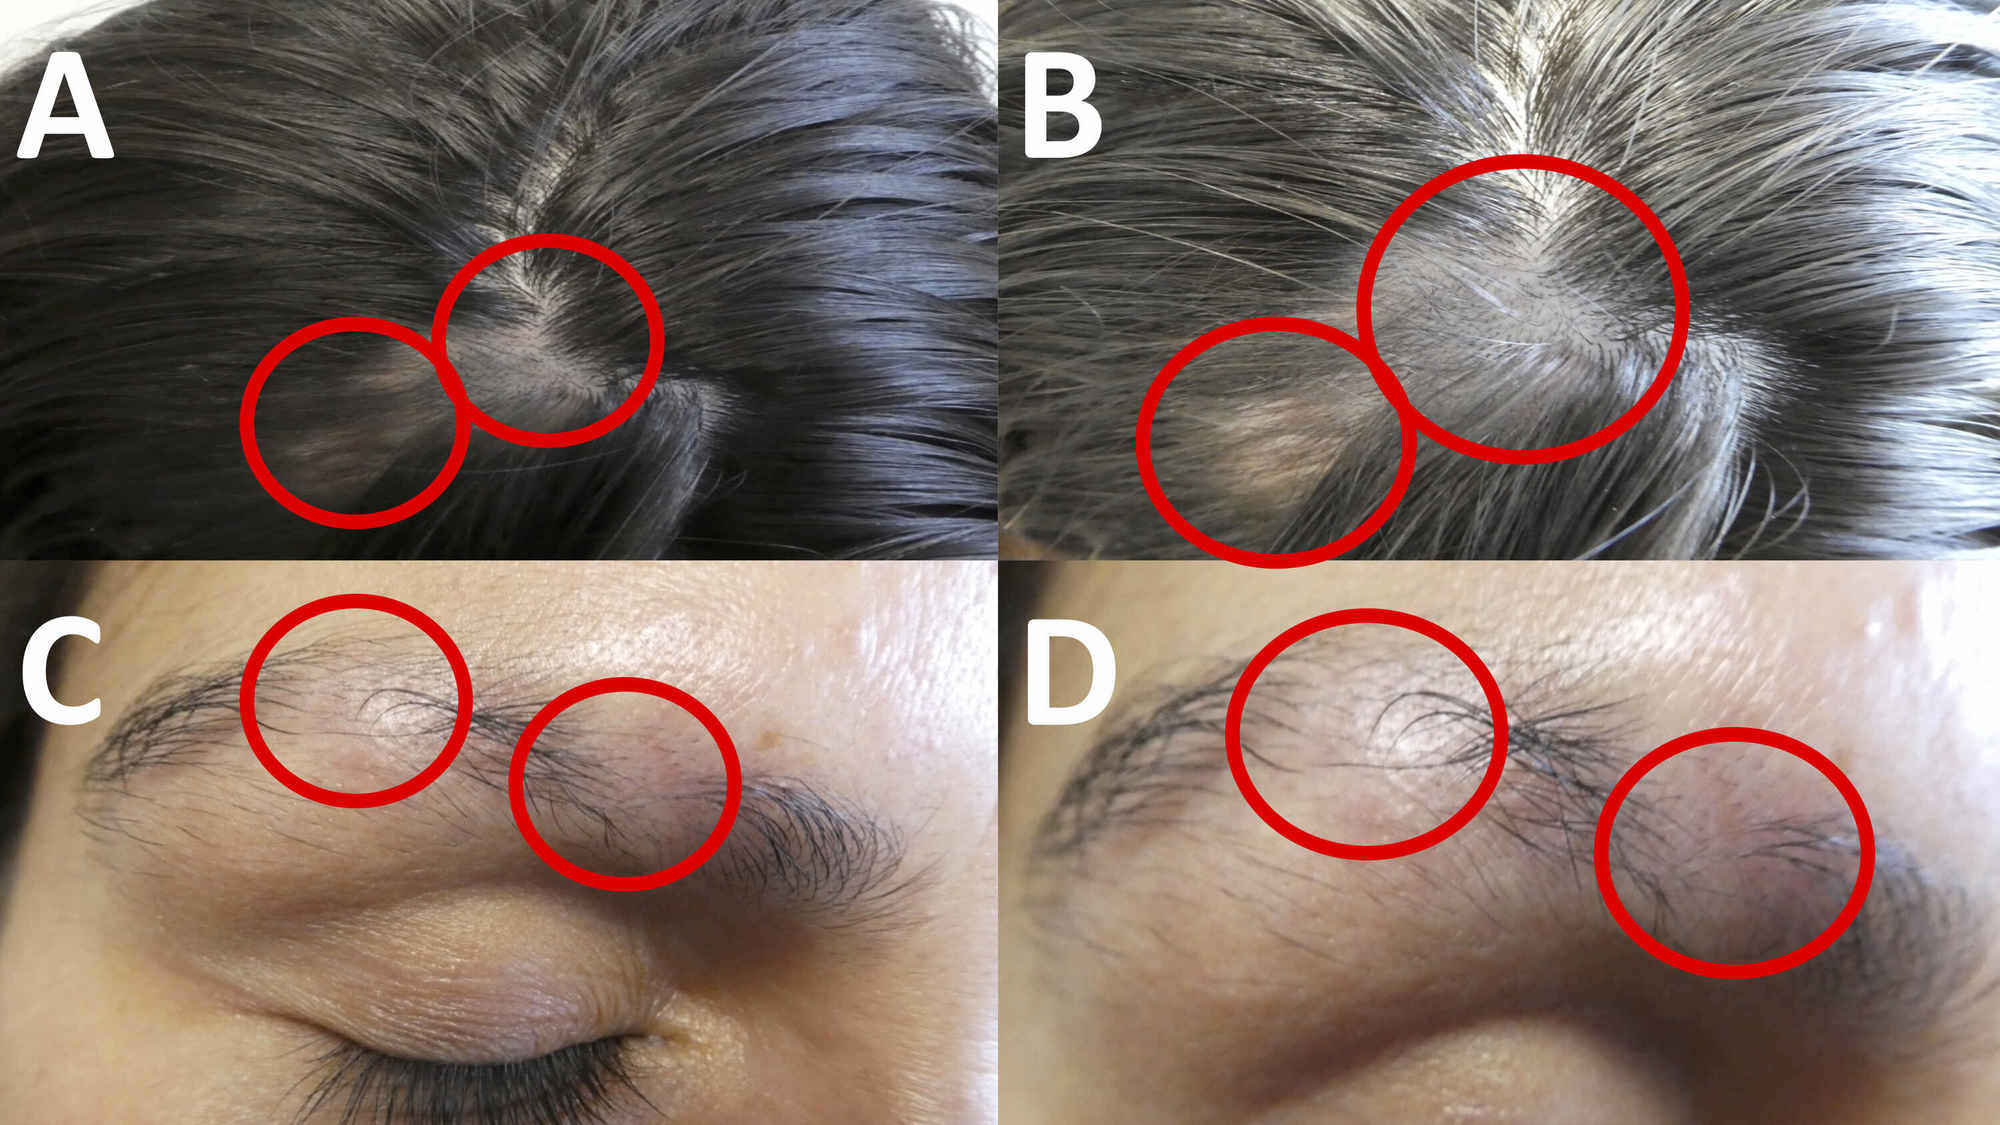 Best Lupus Alopecia operation in Hyderabad, non-surgical hair restoration near Kothapet